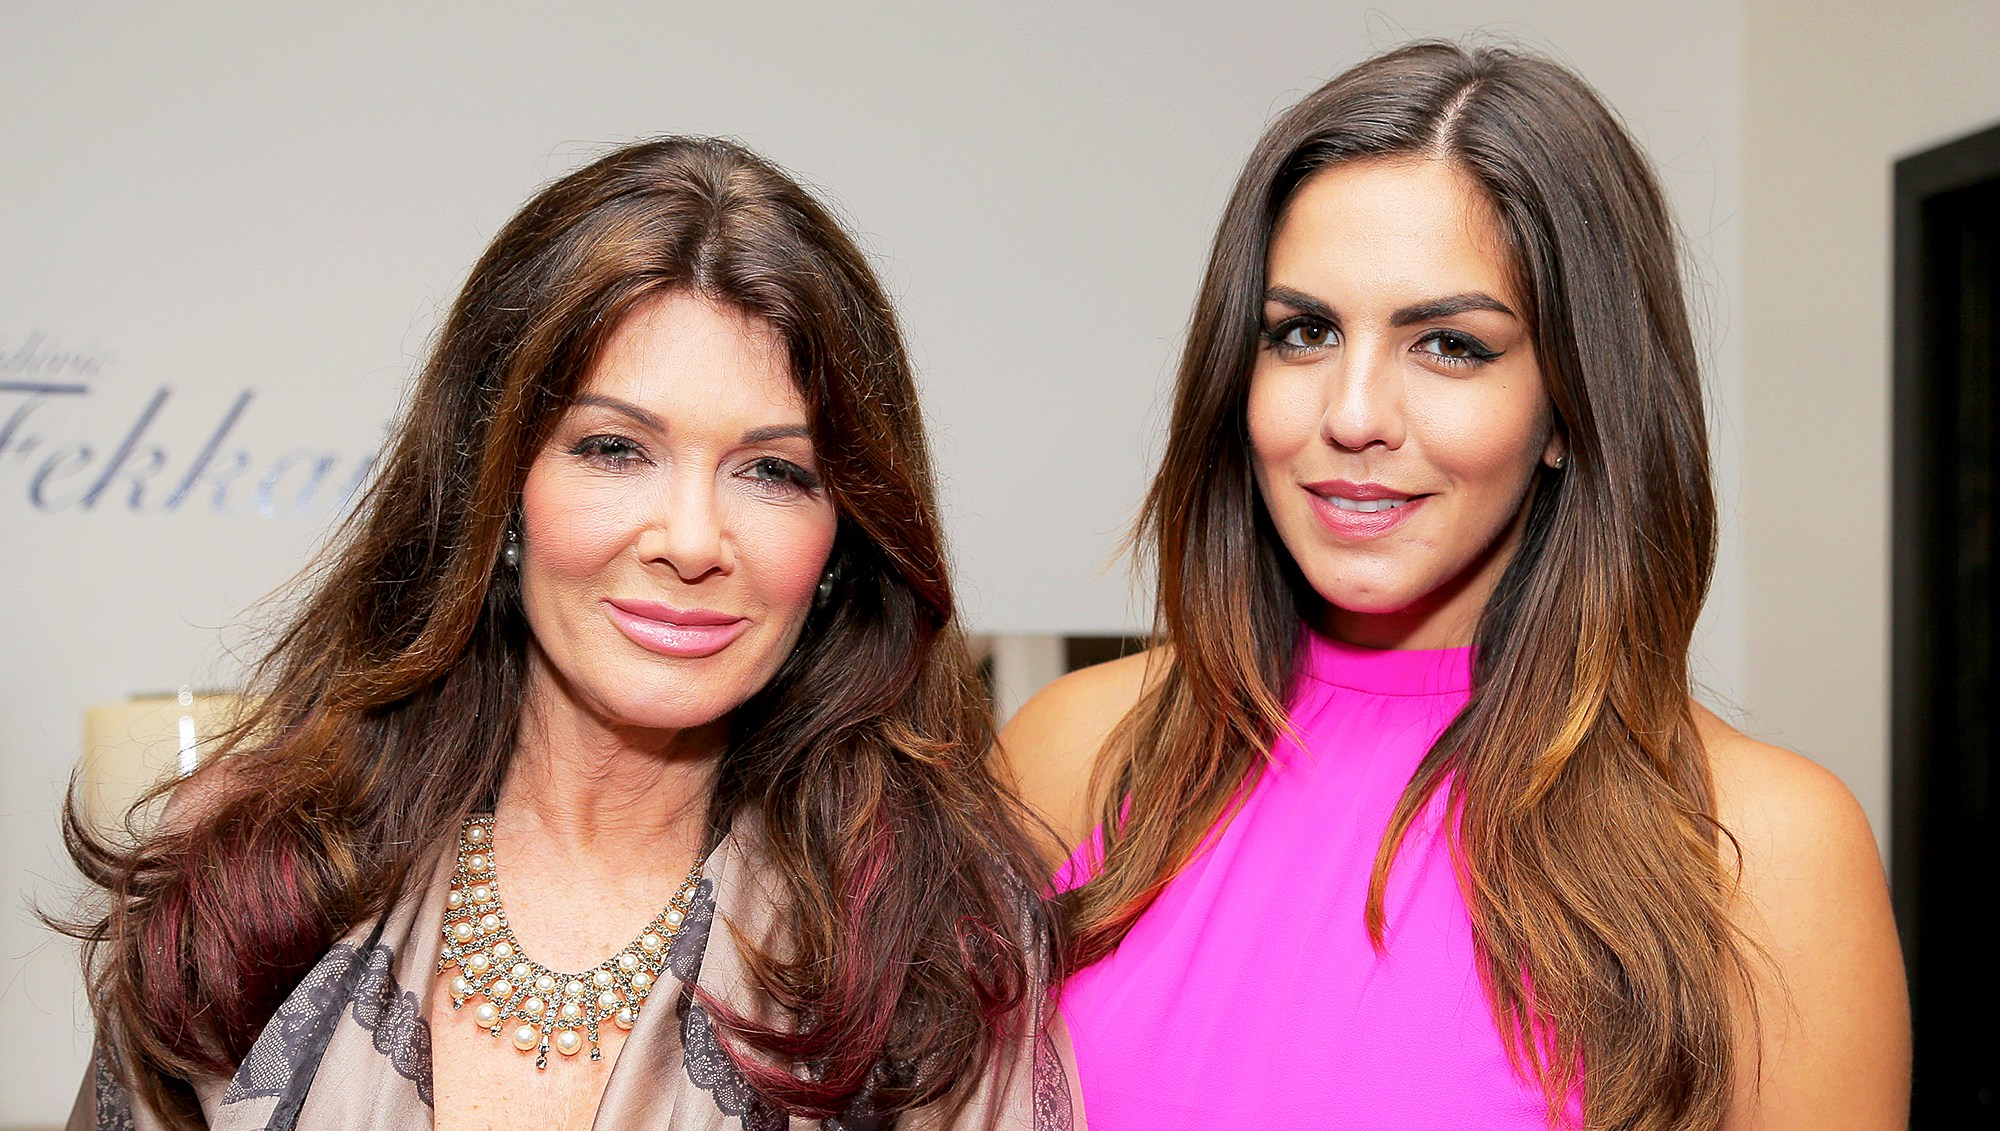 Lisa Vanderpump and Katie Maloney attend Katie Maloney's Pucker and Pout 2015 launch party at Frederic Fekkai Hair Salon in Beverly Hills, California.